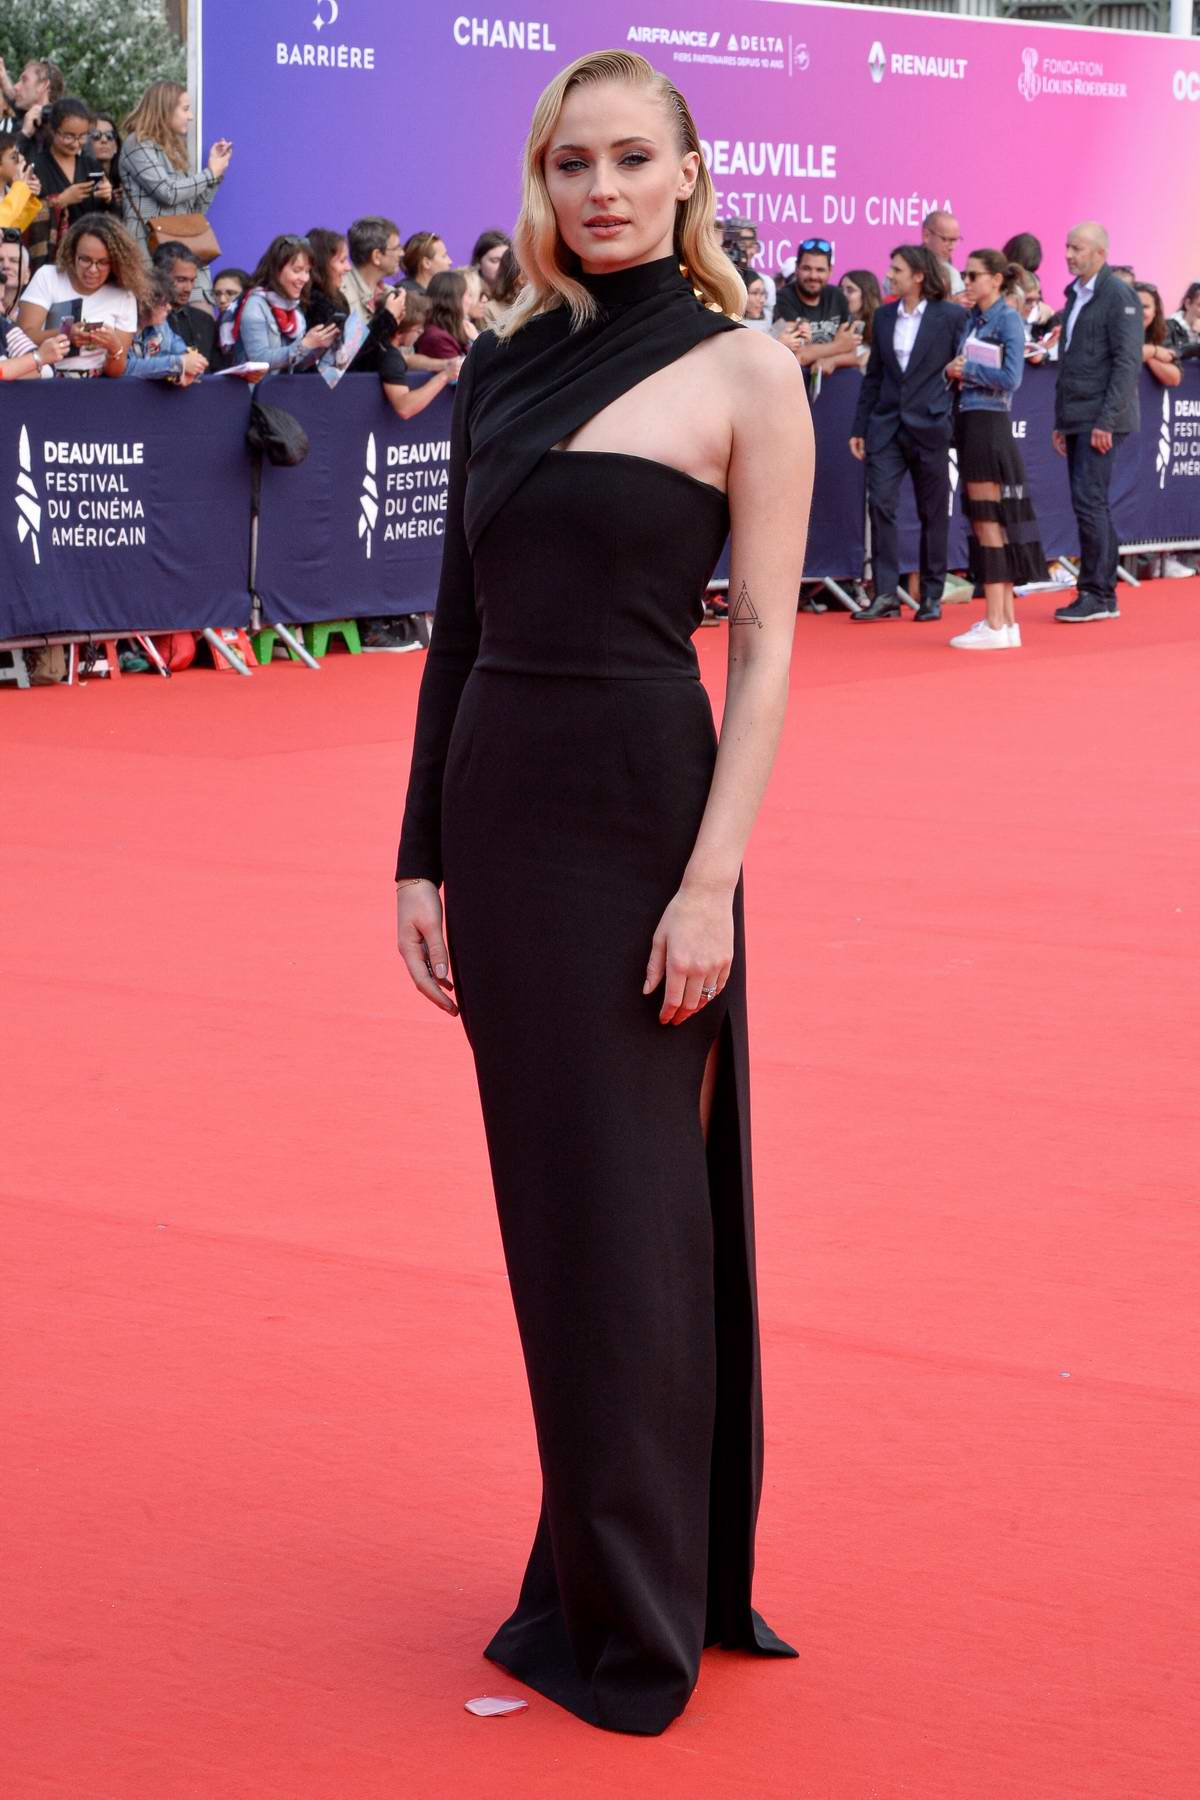 Sophie Turner attends 'Heavy' premiere during the 45th Deauville American Film Festival in Deauville, France